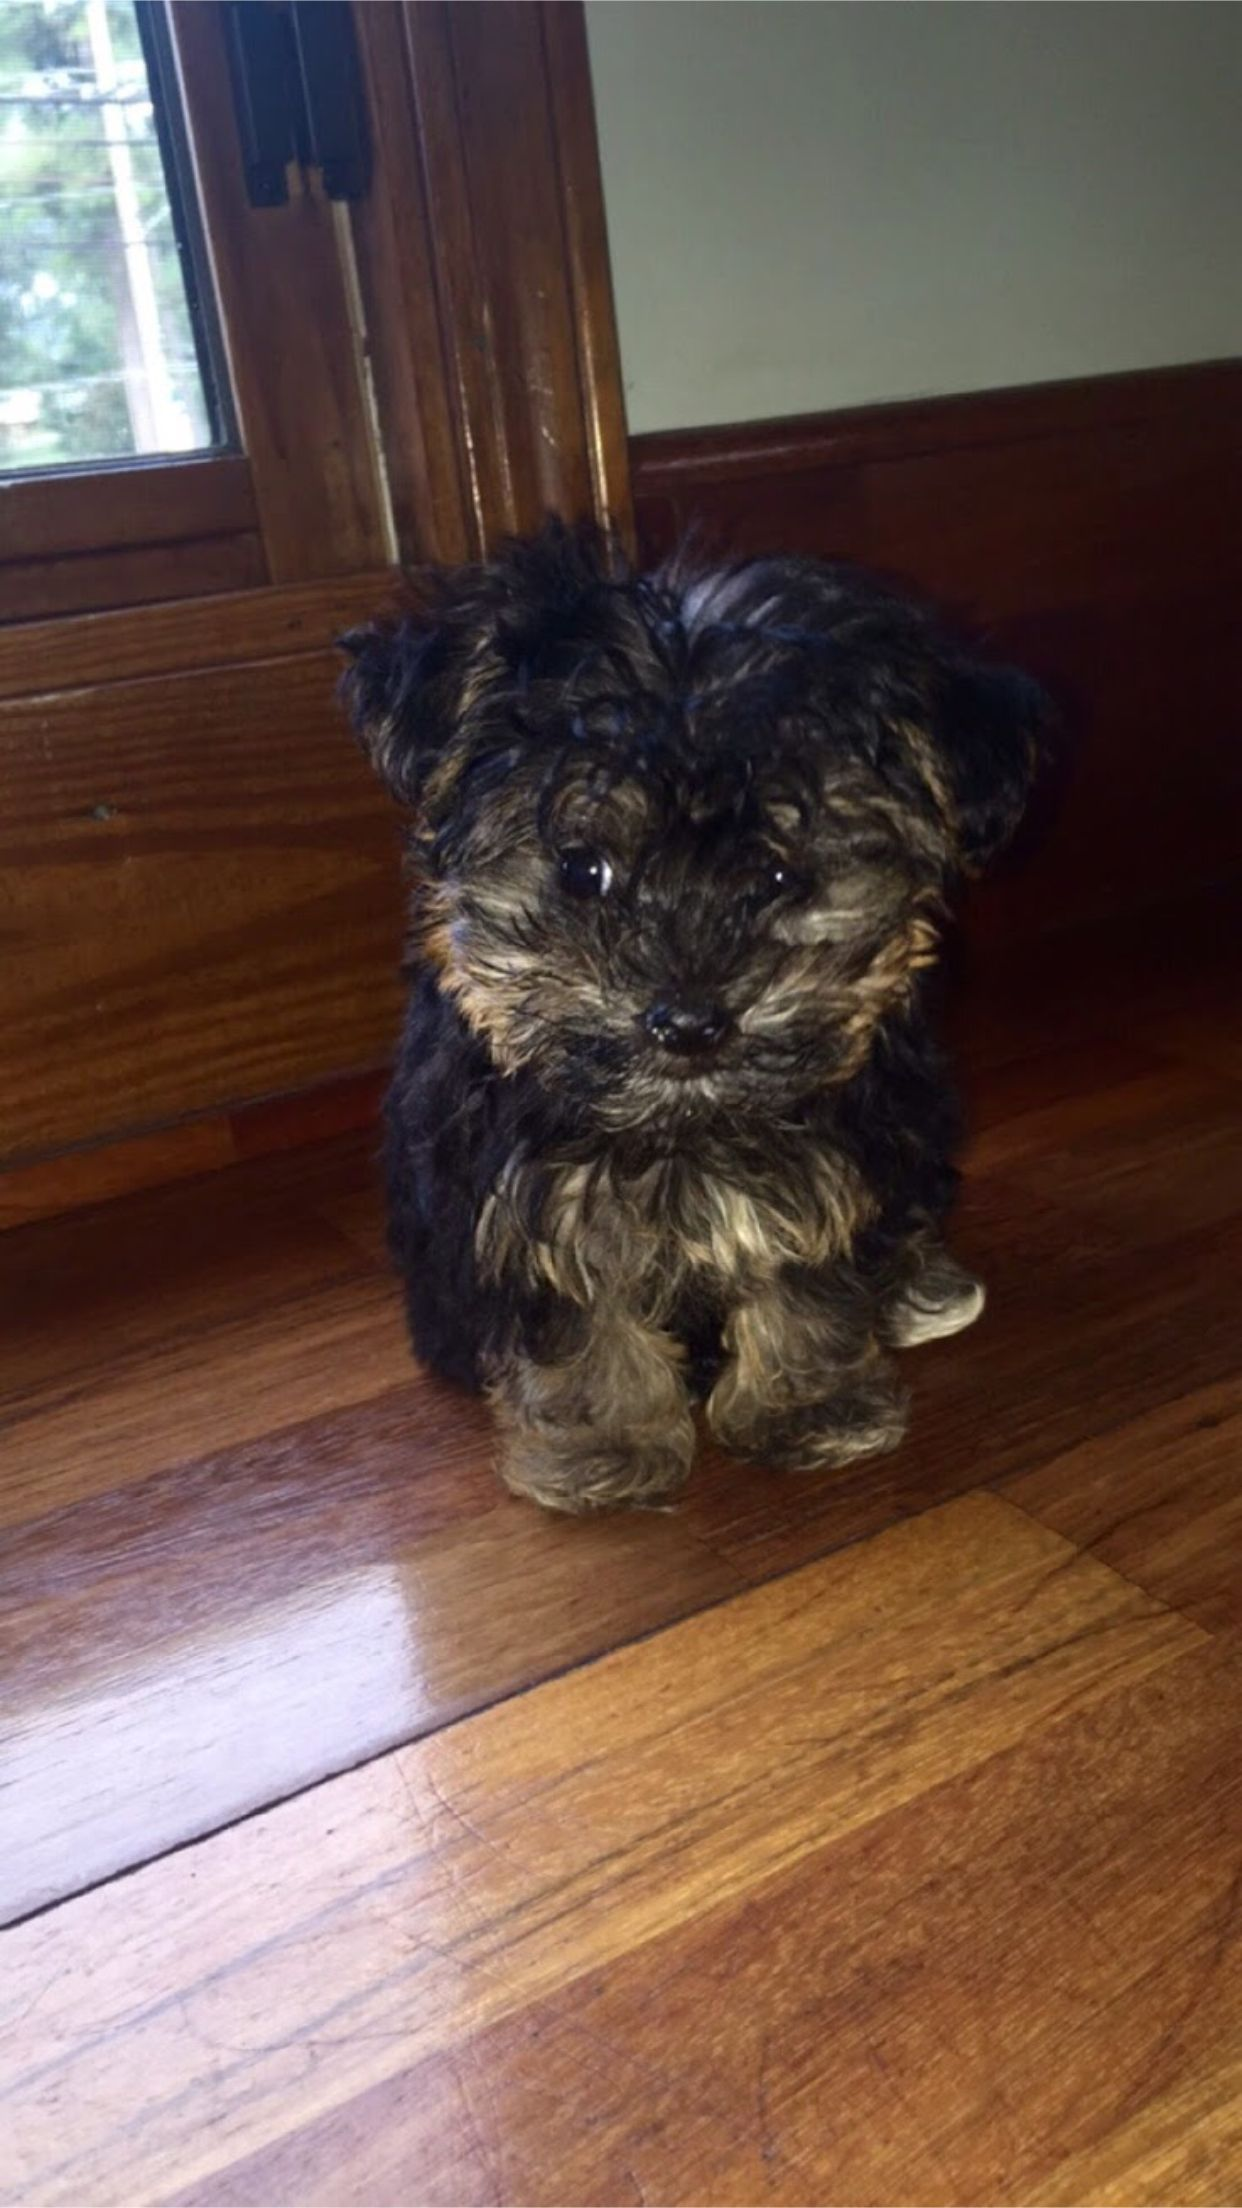 My Yorkie Poo Puppy Ruby 1 5 Pounds At 3 Months Old Yorkie Poo Yorkie Yorkie Poo Puppies